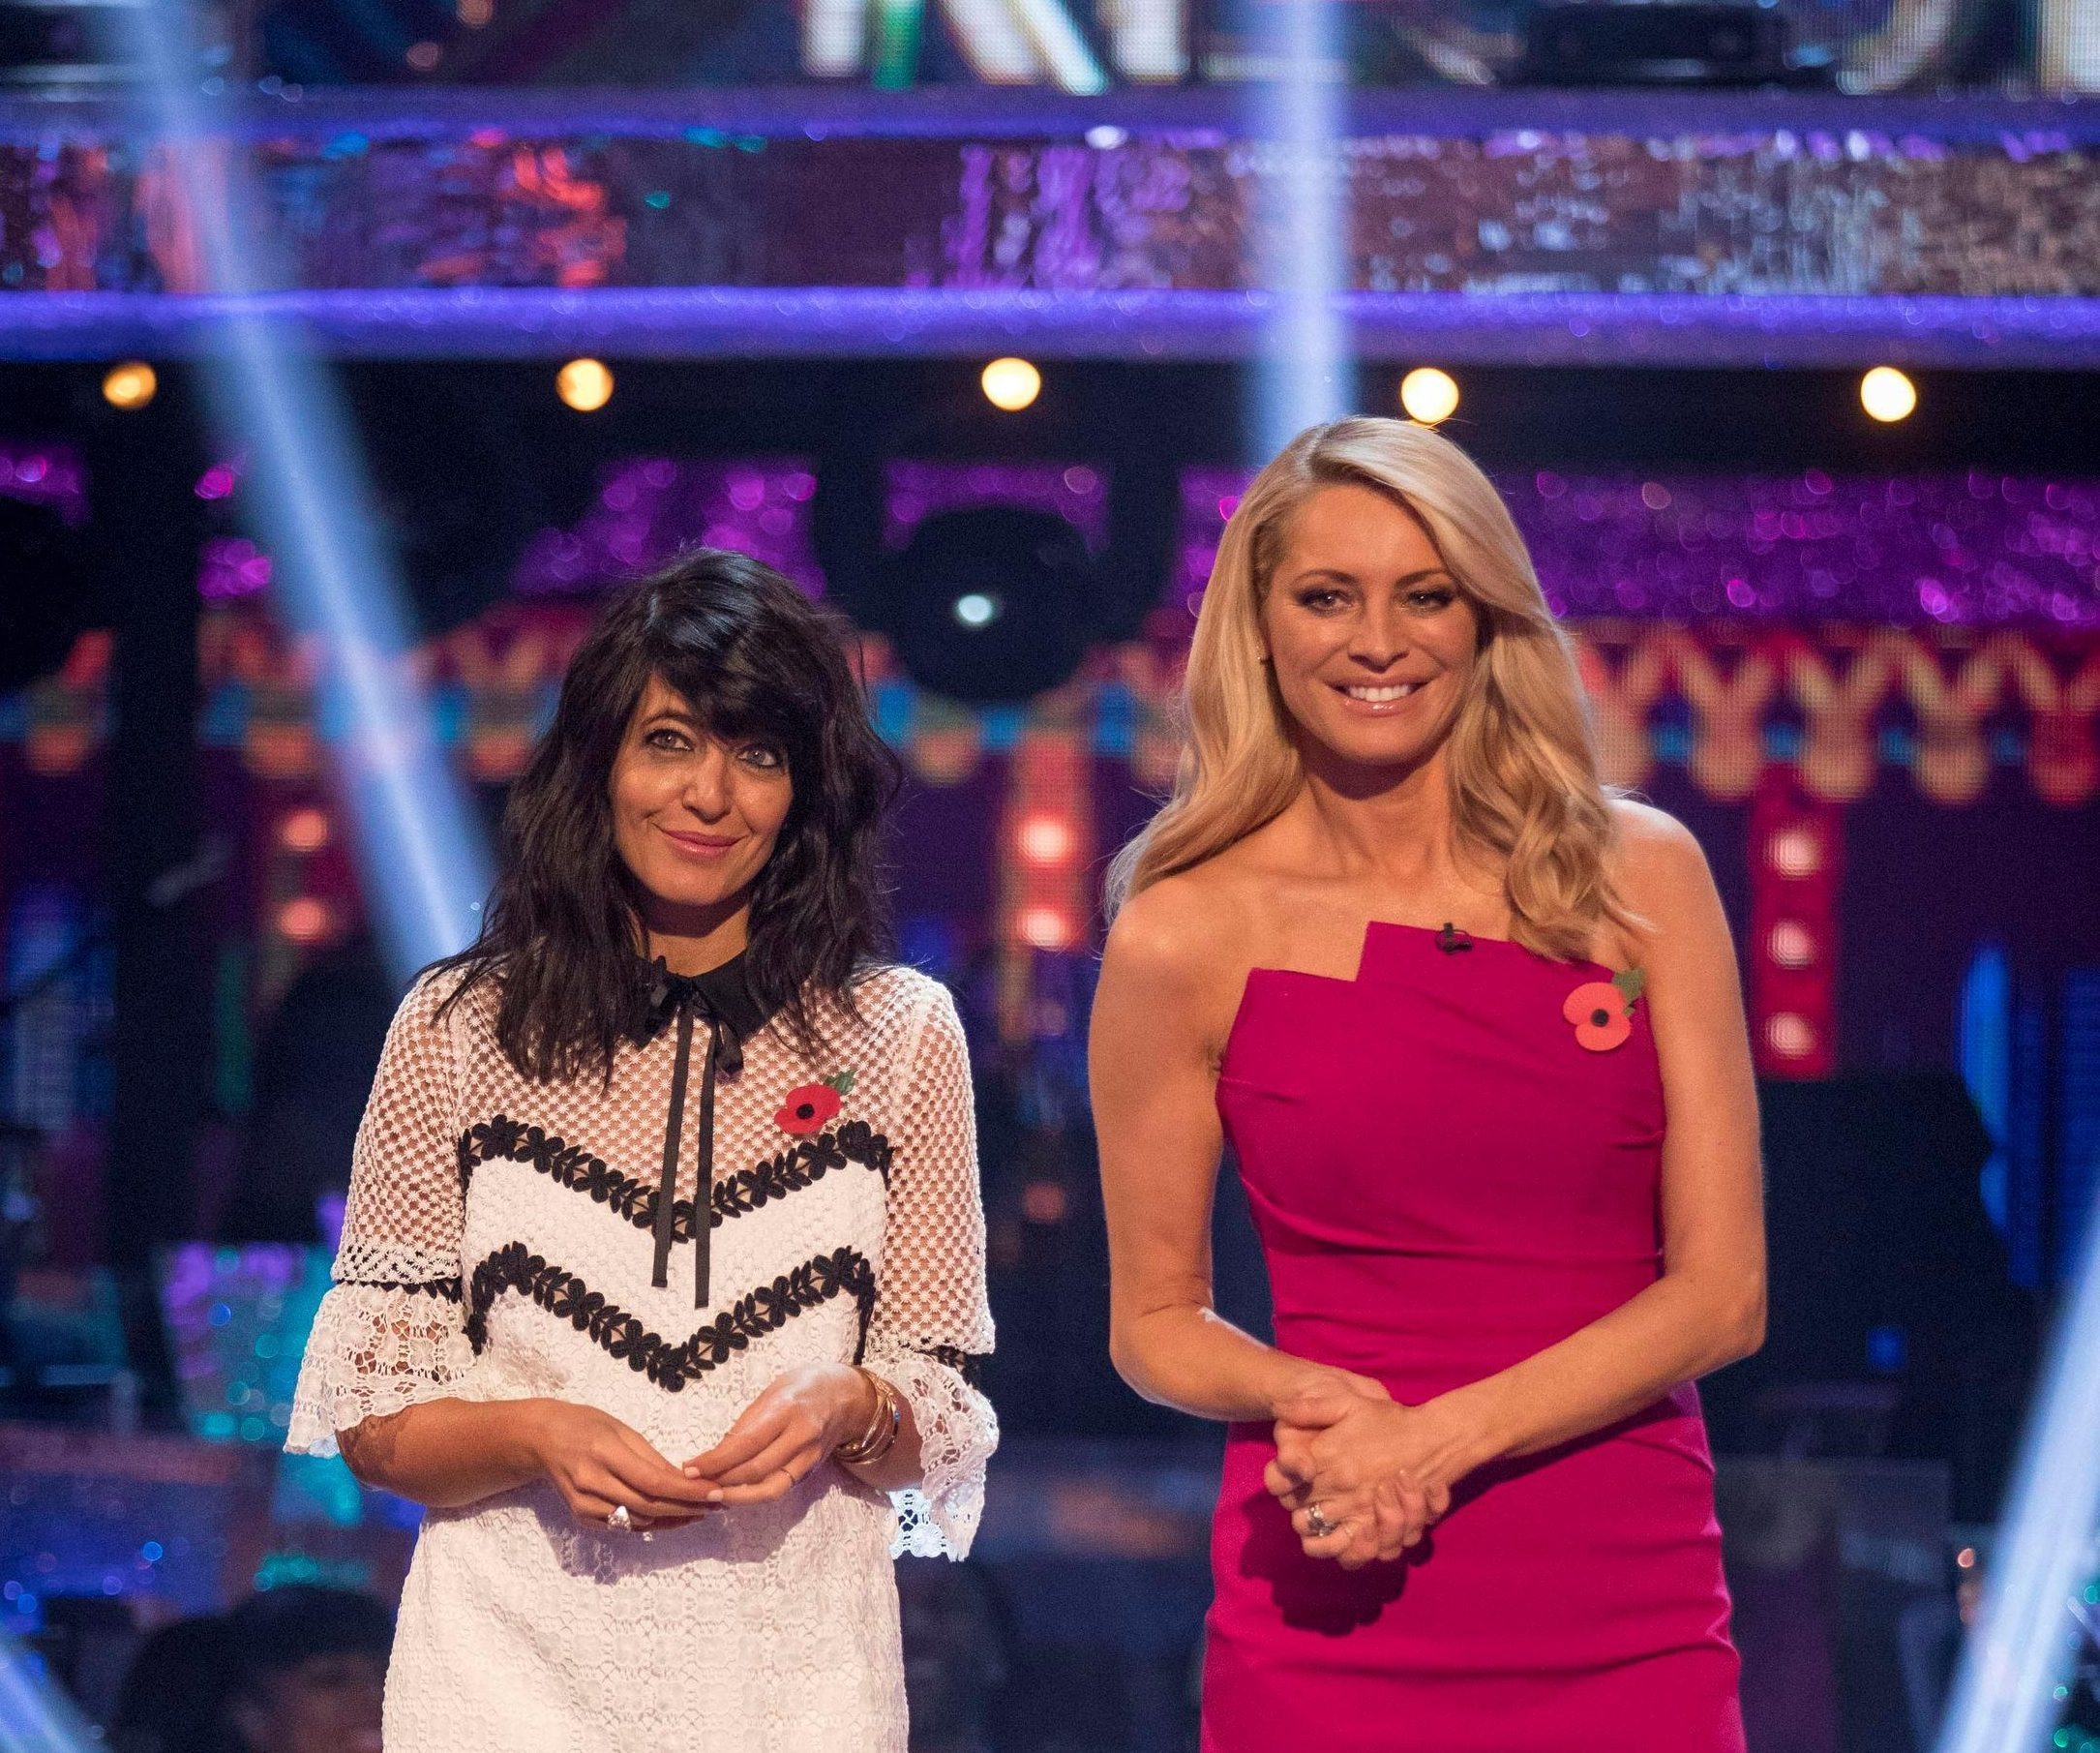 Who will win Strictly Come Dancing 2018? Latest winner odds and predictions